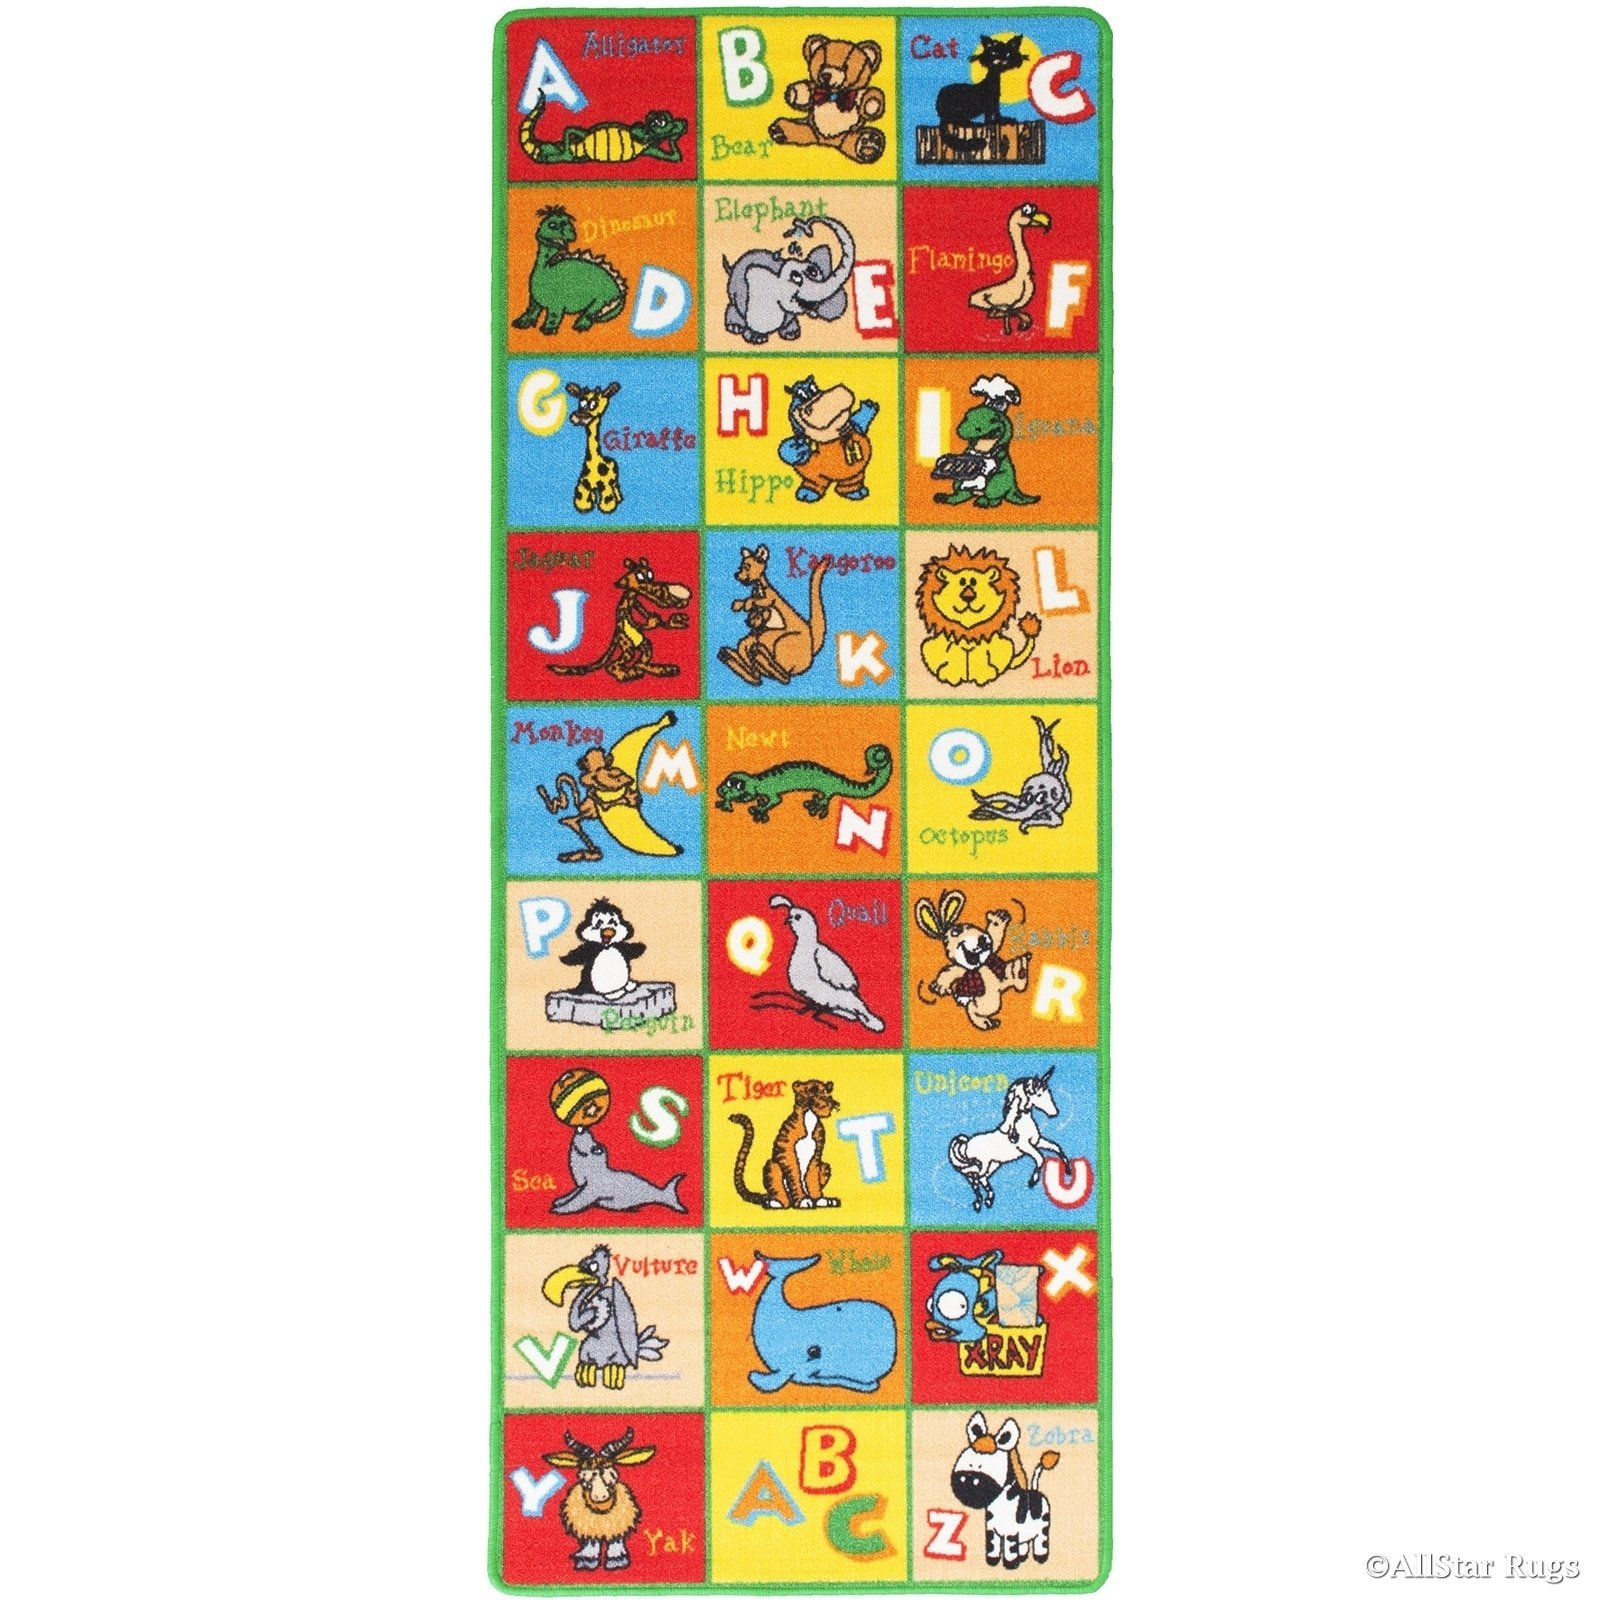 JA 4'11'' x6'11 ft Multi Colored Red Blue Yellow Orange Green White Abstract Patterned Kids Area Rug, Indoor Artistic Alphabet Letters Girl Boy Nursery Room Mat Rectangle Carpet, Animal Nylon Flooring by JA (Image #2)